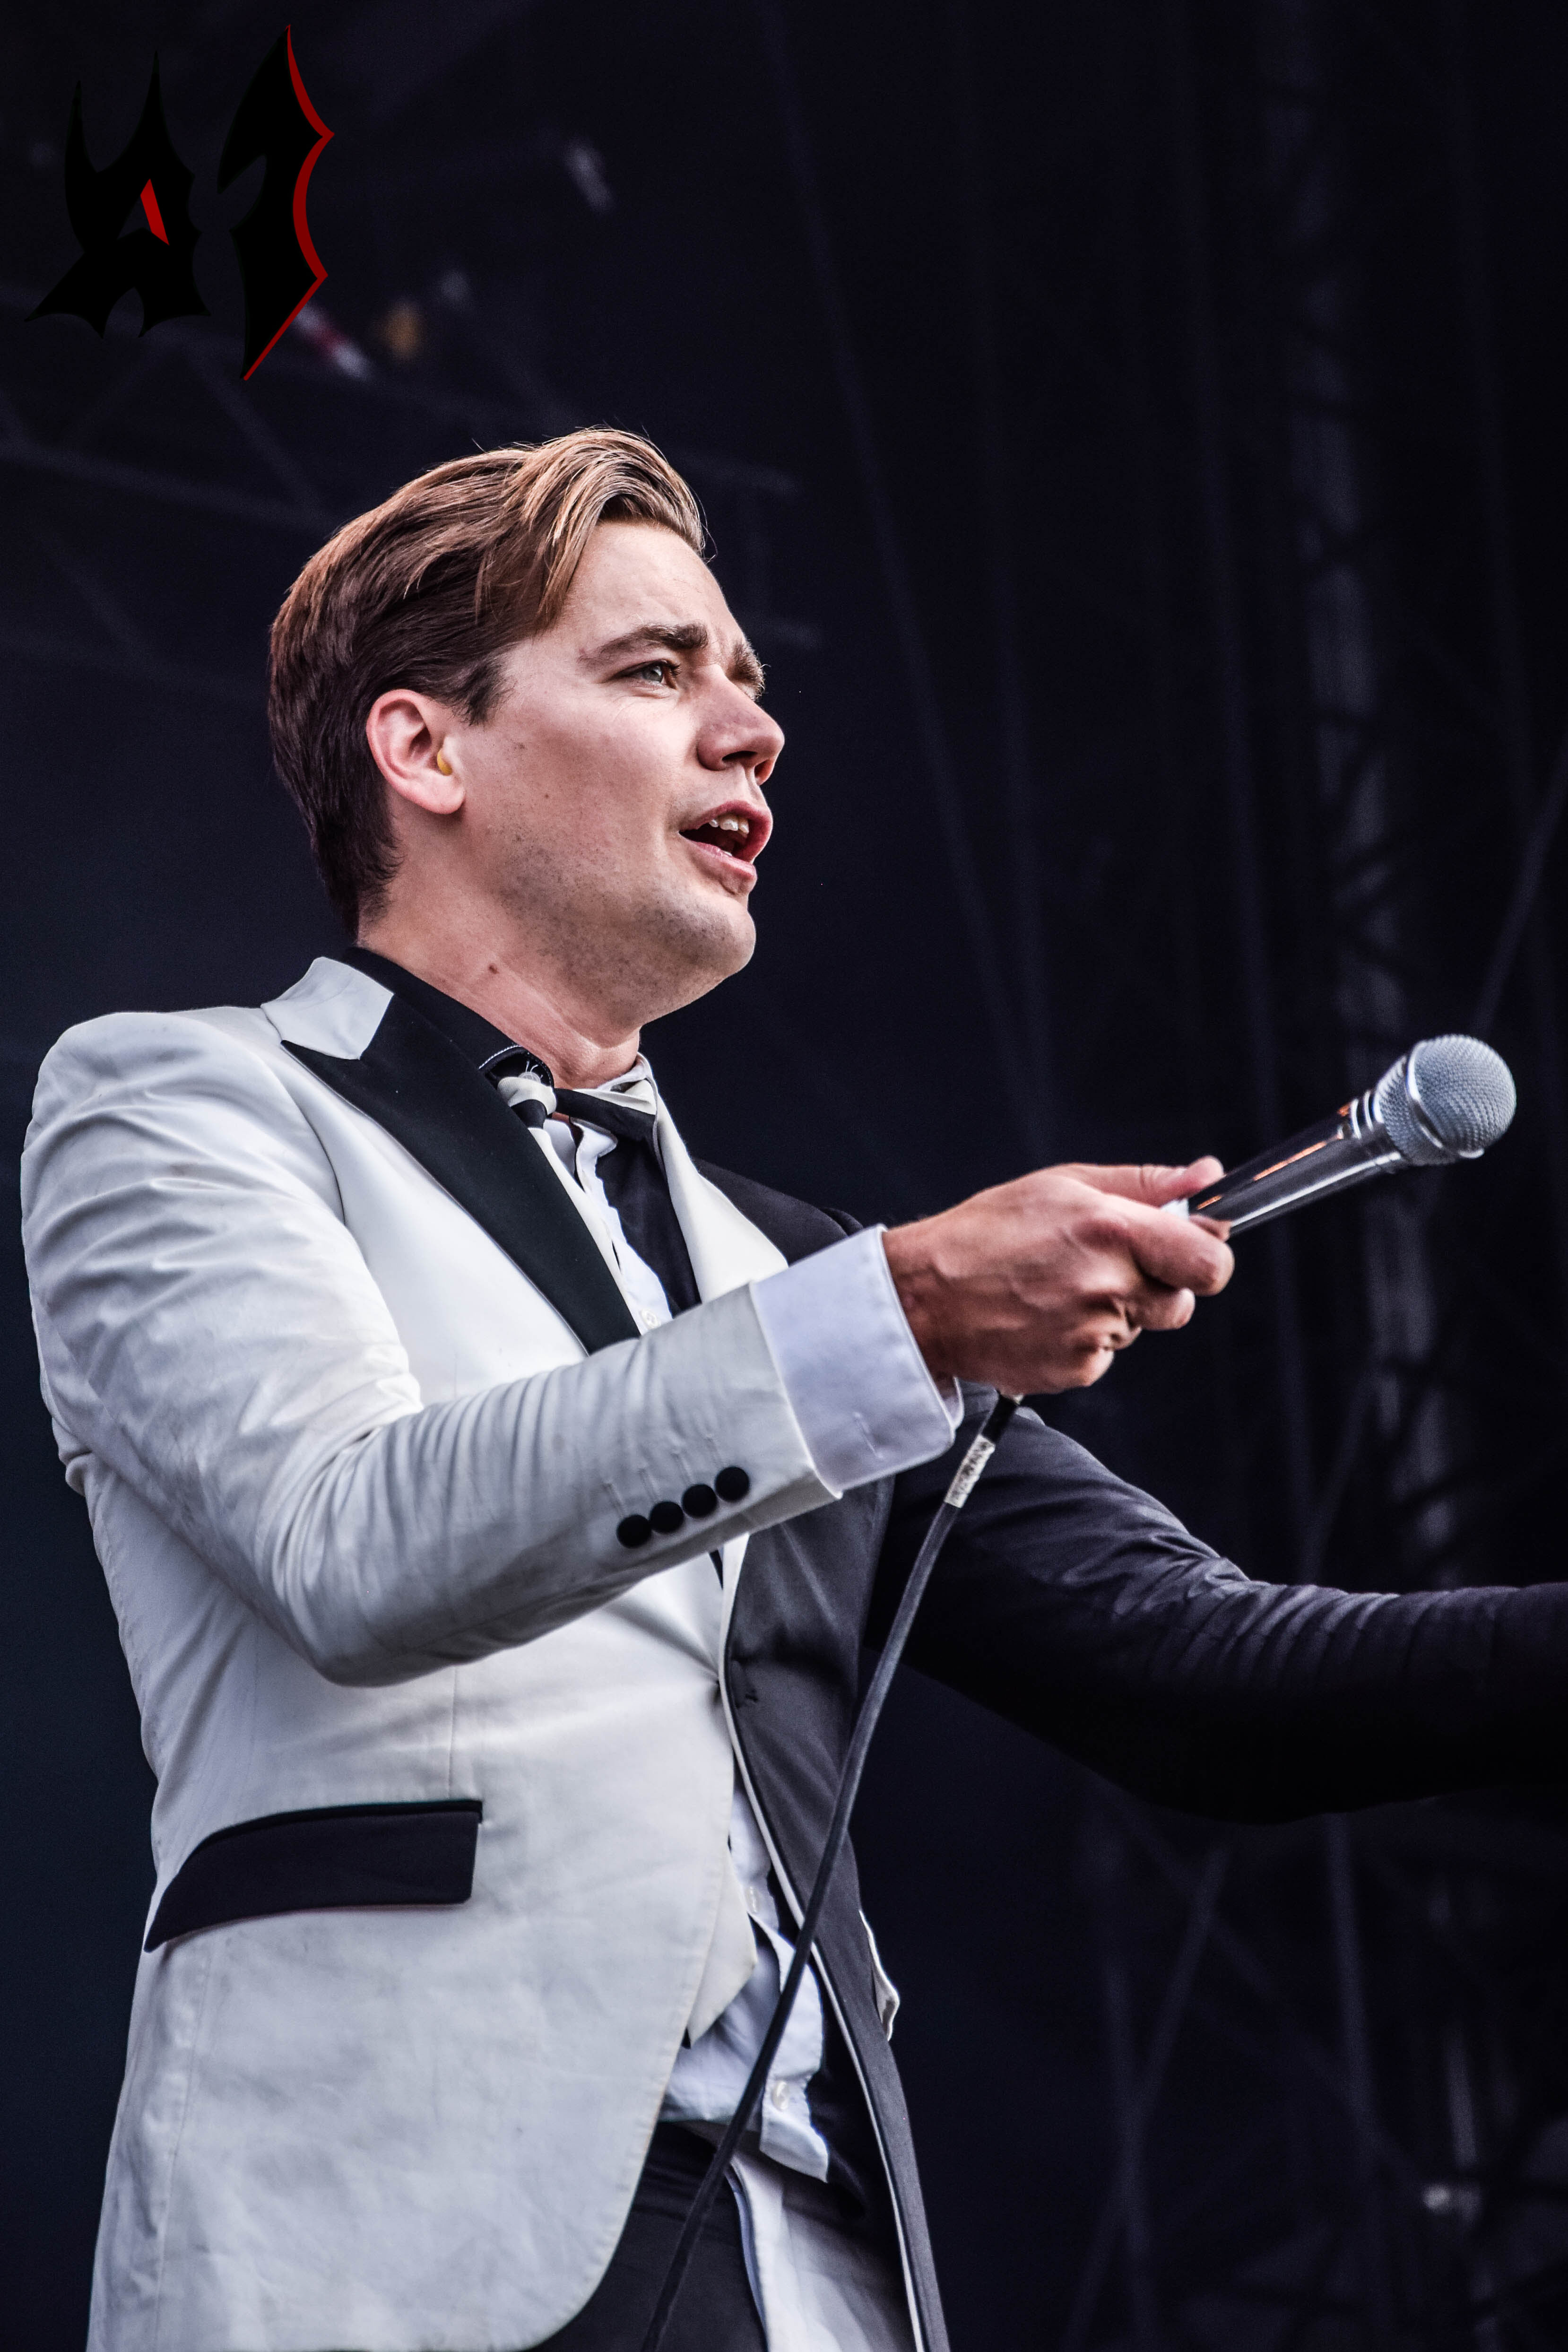 Donwload 2018 – Day 3 - The Hives 22